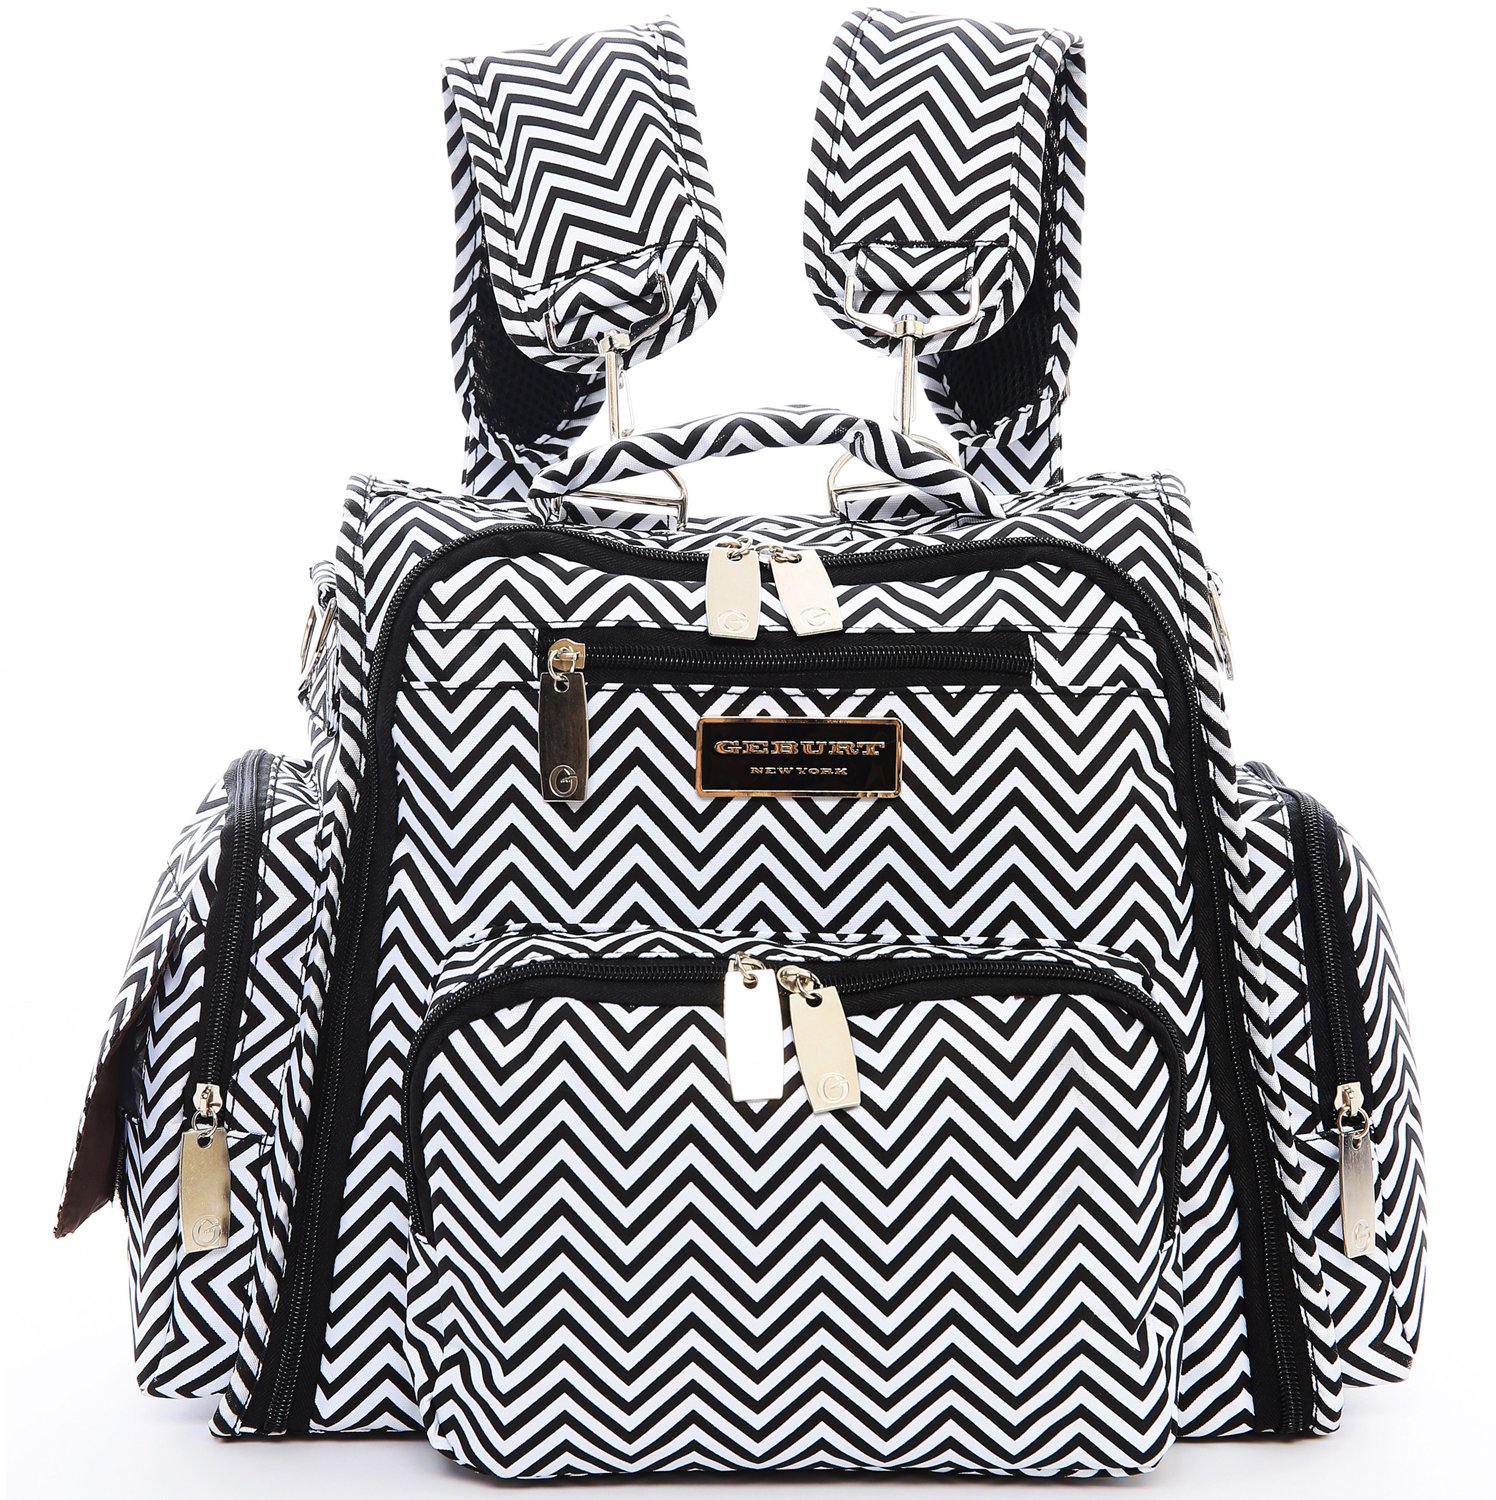 4 Style In 1 Fully Padded Convertible Diaper Bag/Backpack Set with 18 Pockets - Secure Insulated Zipper Pockets, Large Changing Pad, bottle cooler/warmer, Shoulder/Backpack / Stroller Straps Geburt